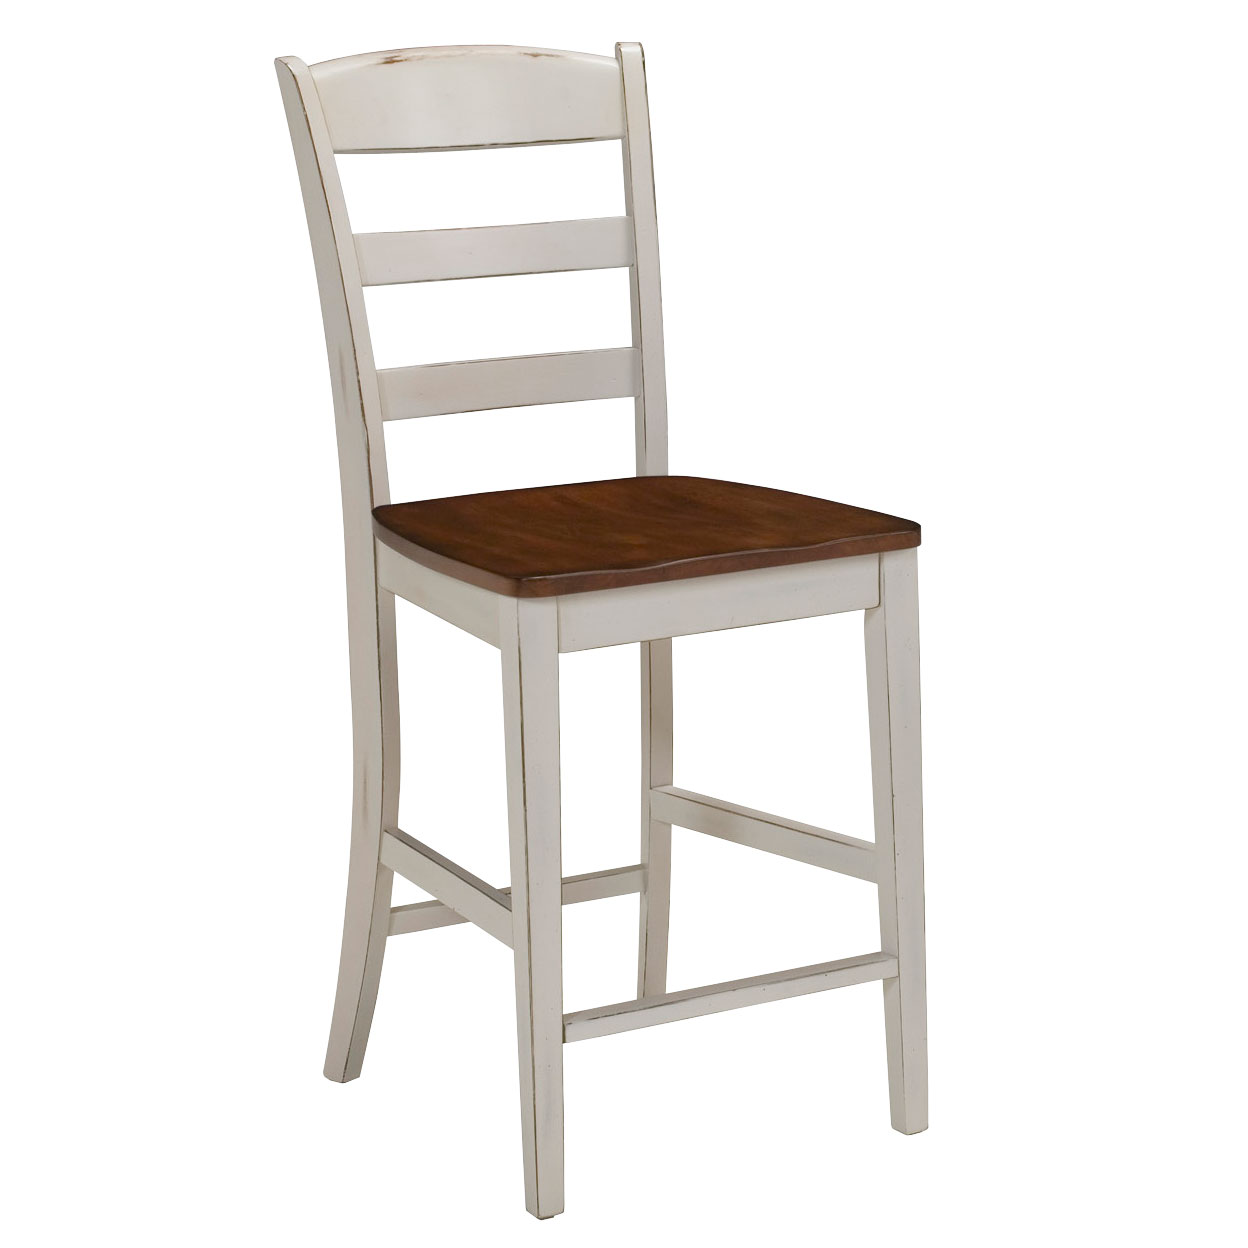 Antique White Finished Bar Stool with Distressed Oak Seat, ANTIQUE WHITE